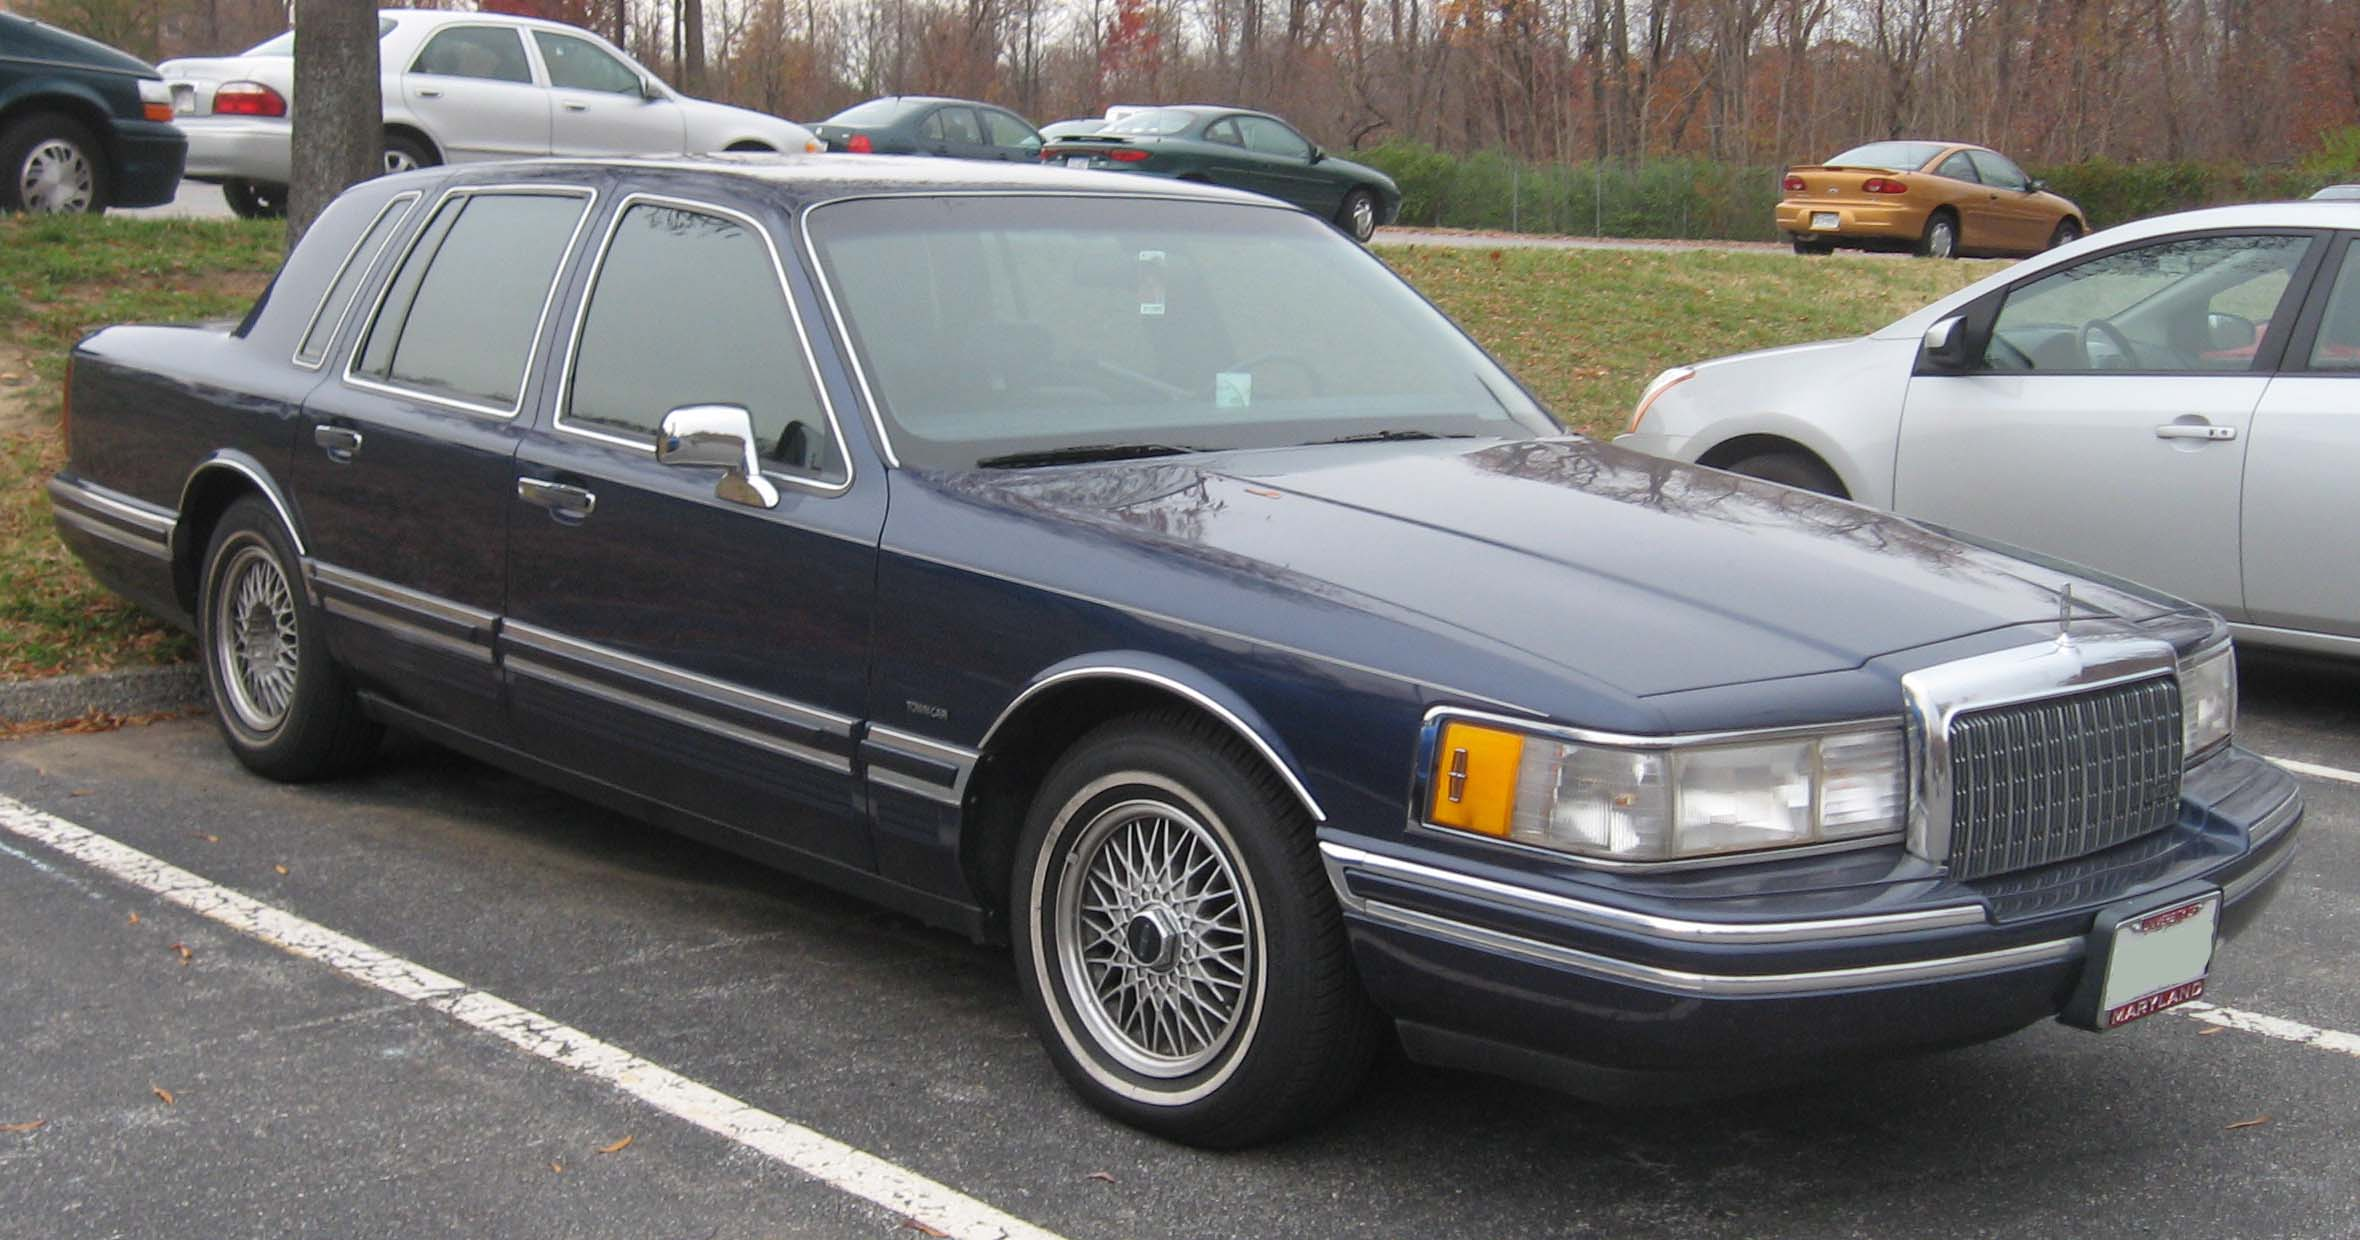 File:90-94 Lincoln Town Car.jpg - Wikimedia Commons